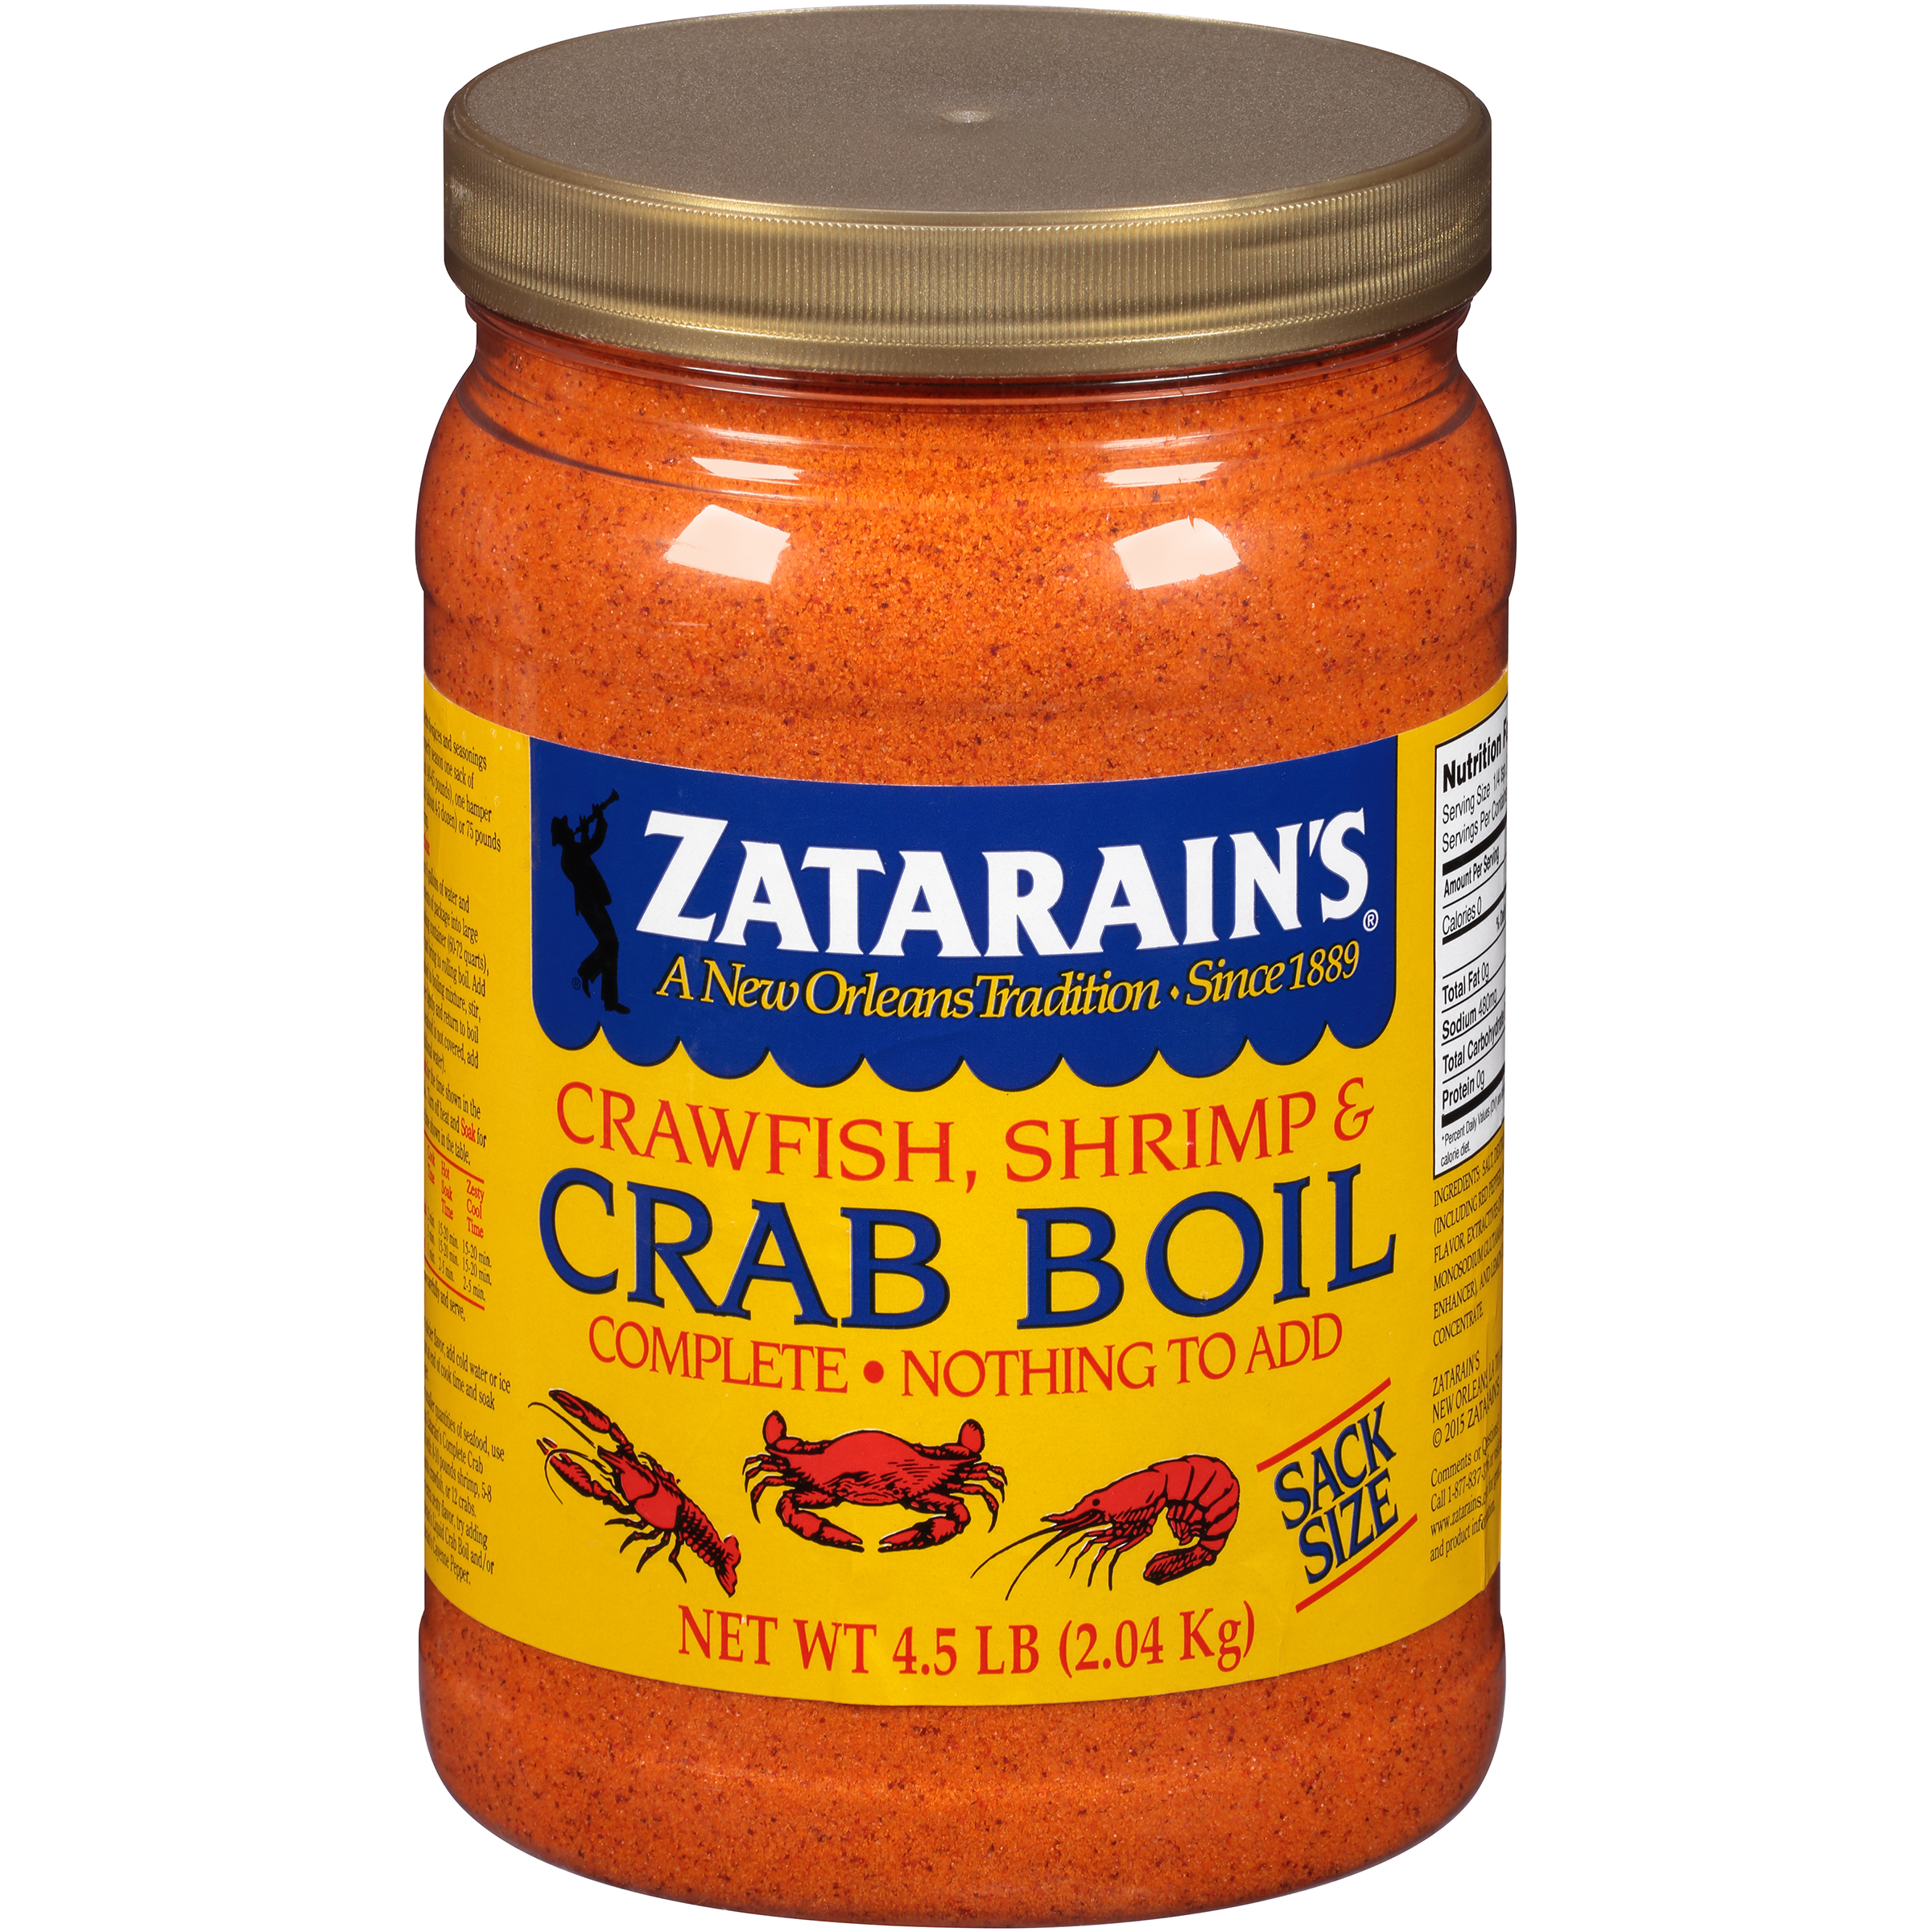 Zatarains Crawfish Shrimp Crab Boil